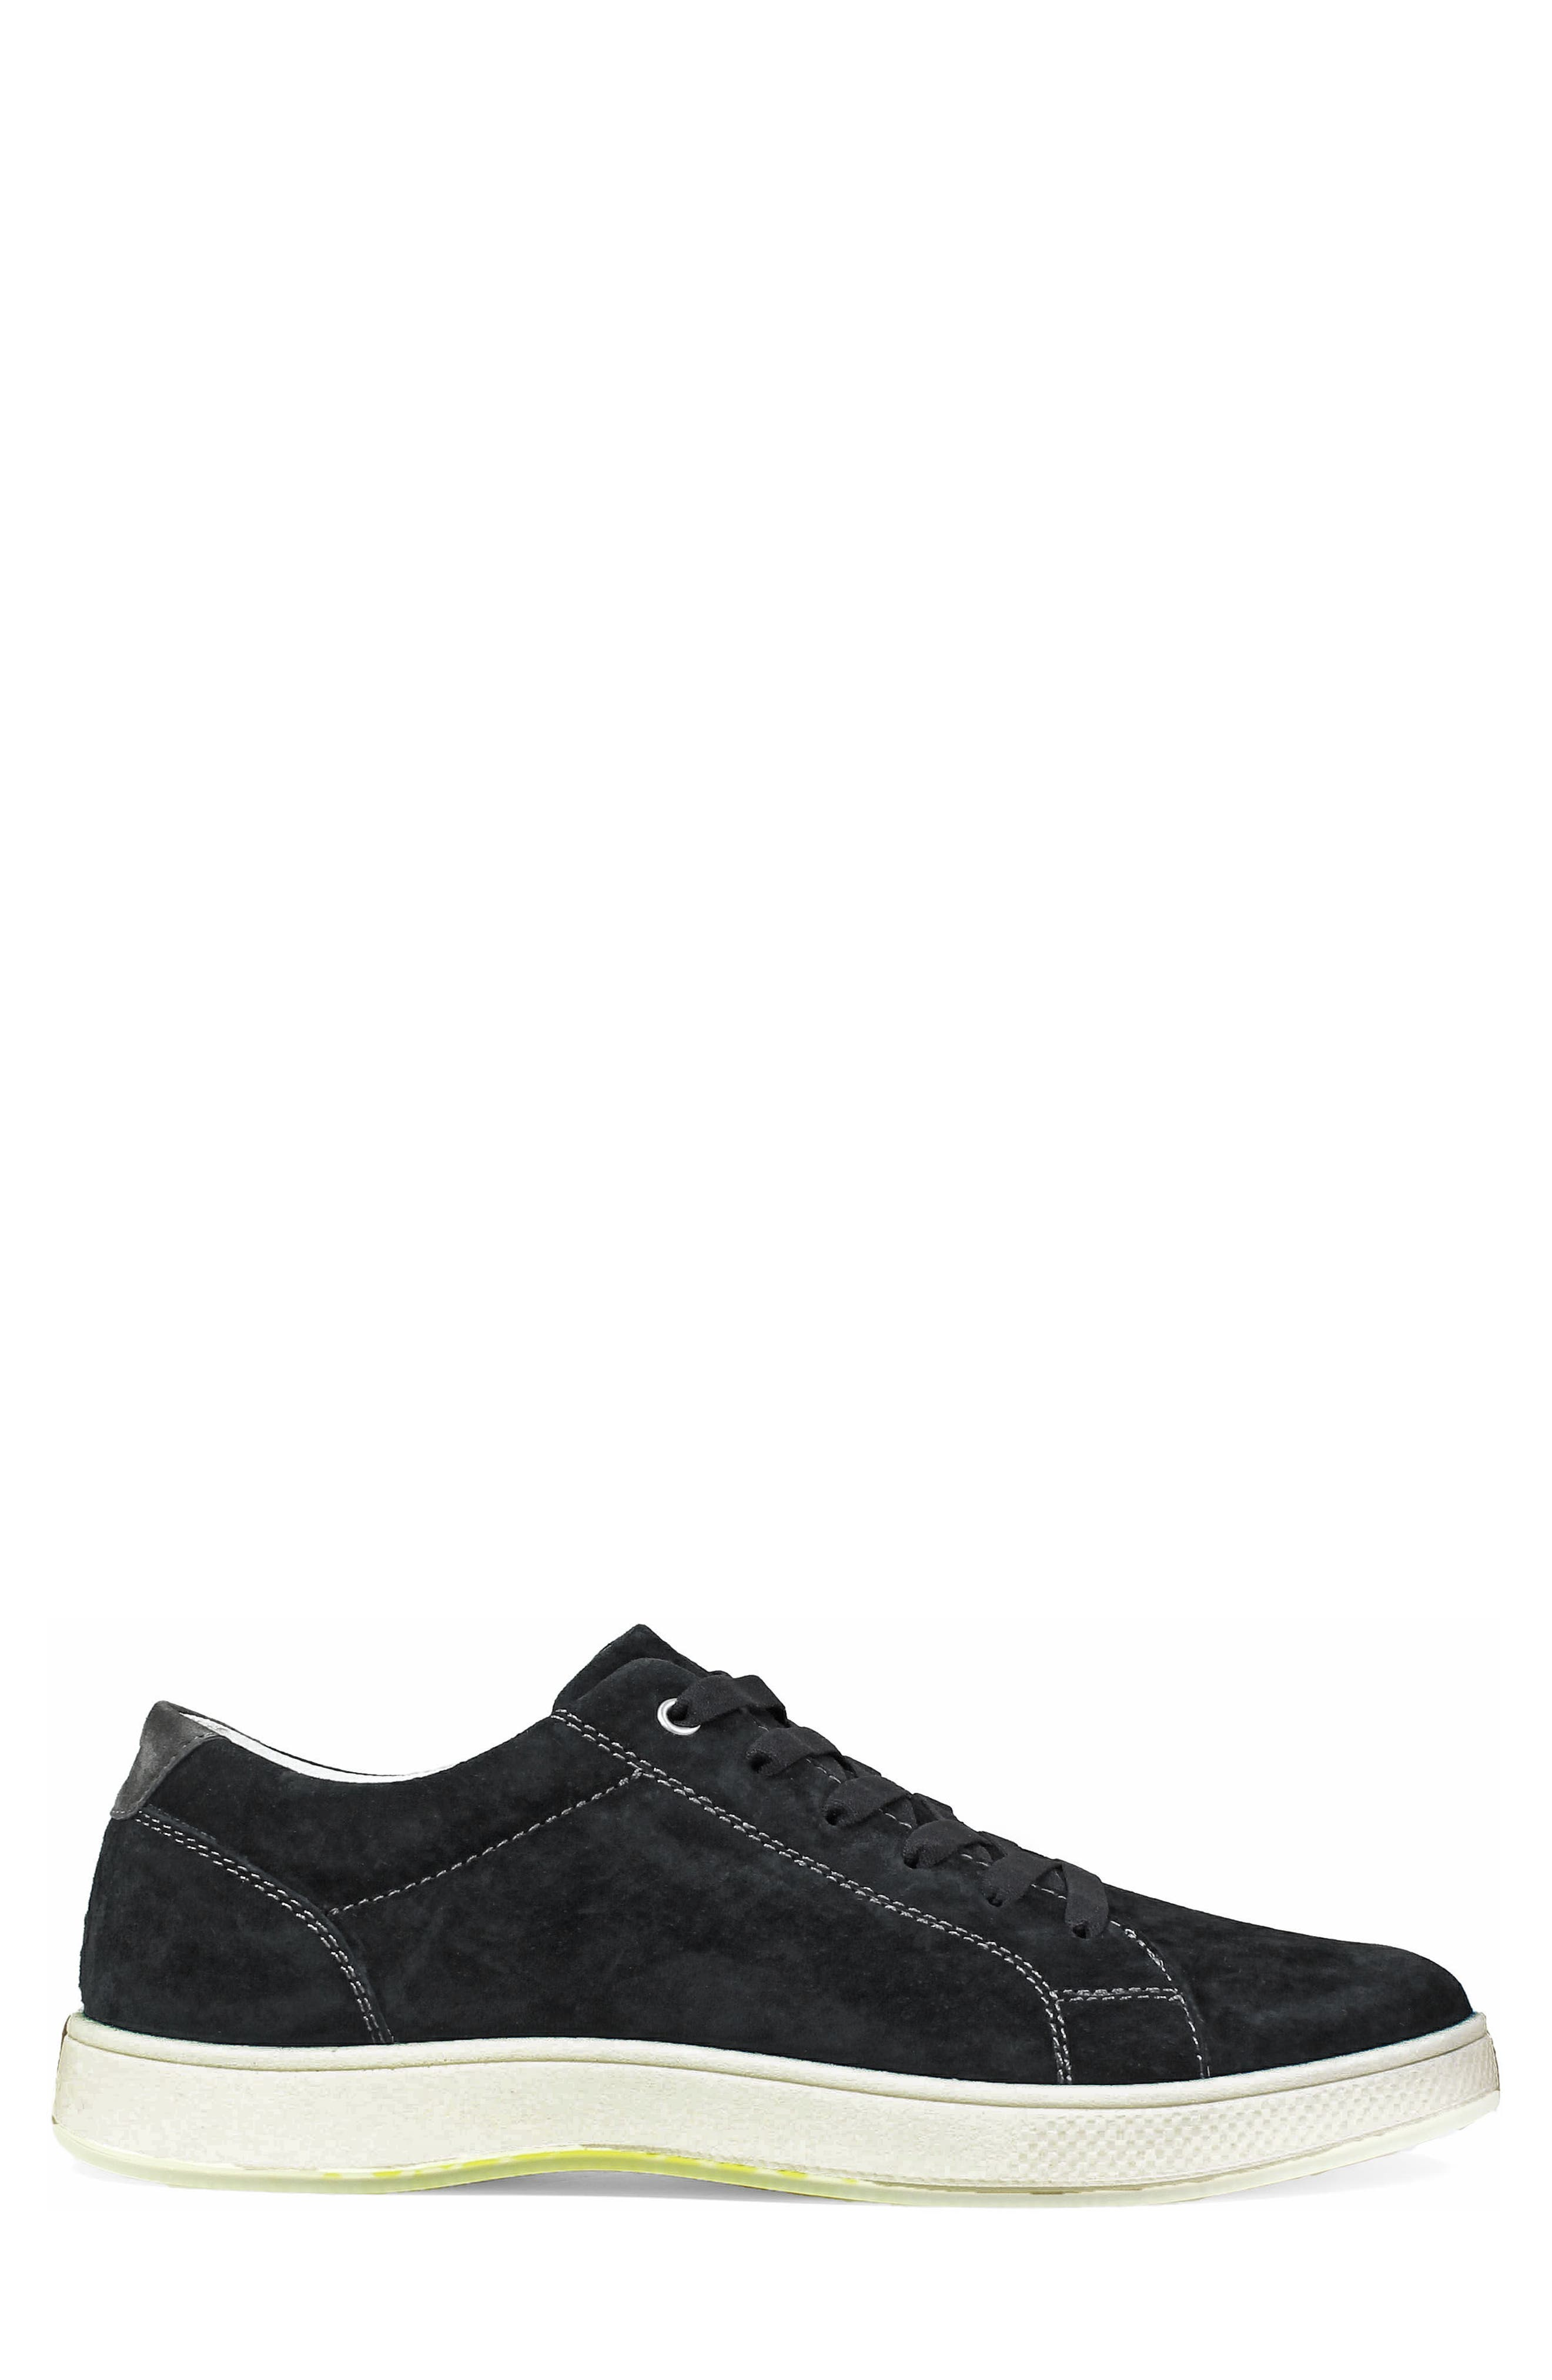 Edge Low Top Sneaker,                             Alternate thumbnail 3, color,                             BLACK NUBUCK